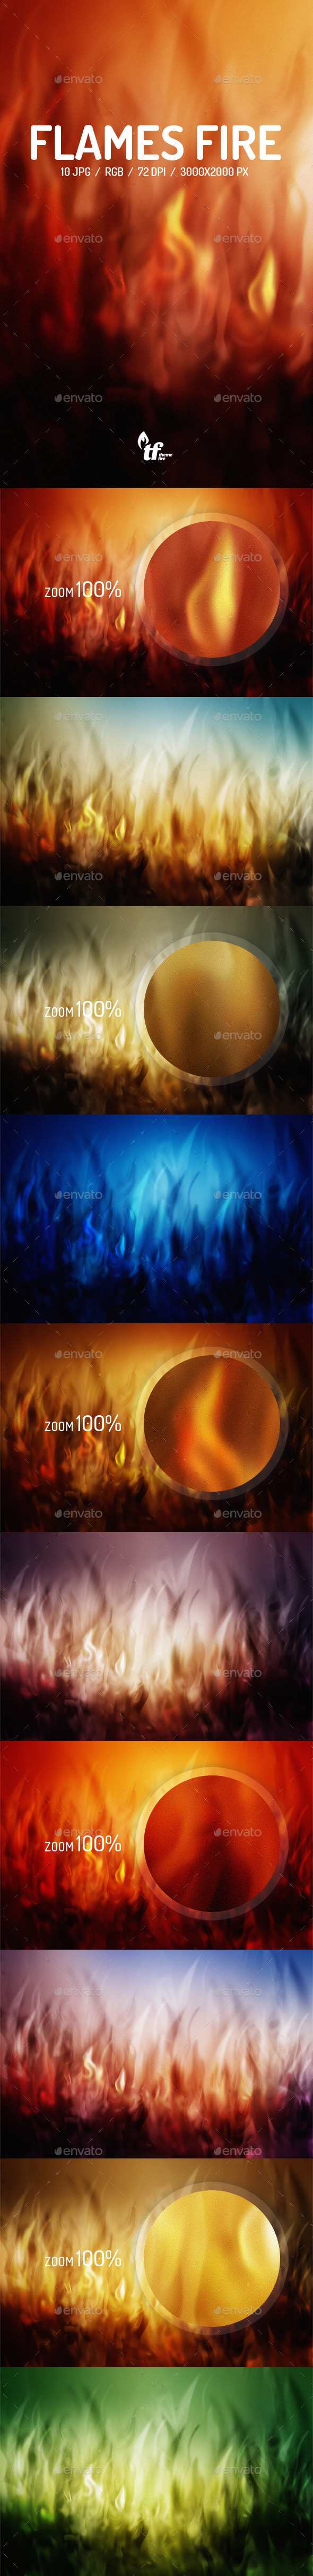 GraphicRiver Flames Fire Backgrounds 9150833